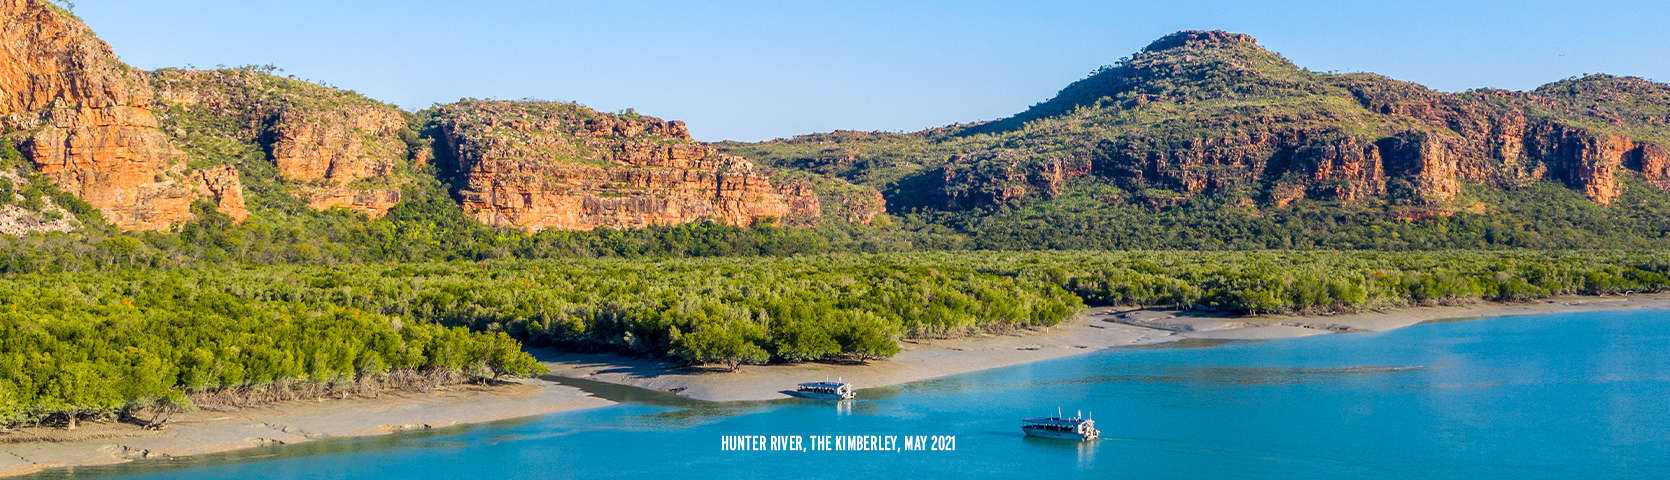 Hunter River The Kimberley With Coral Expeditions